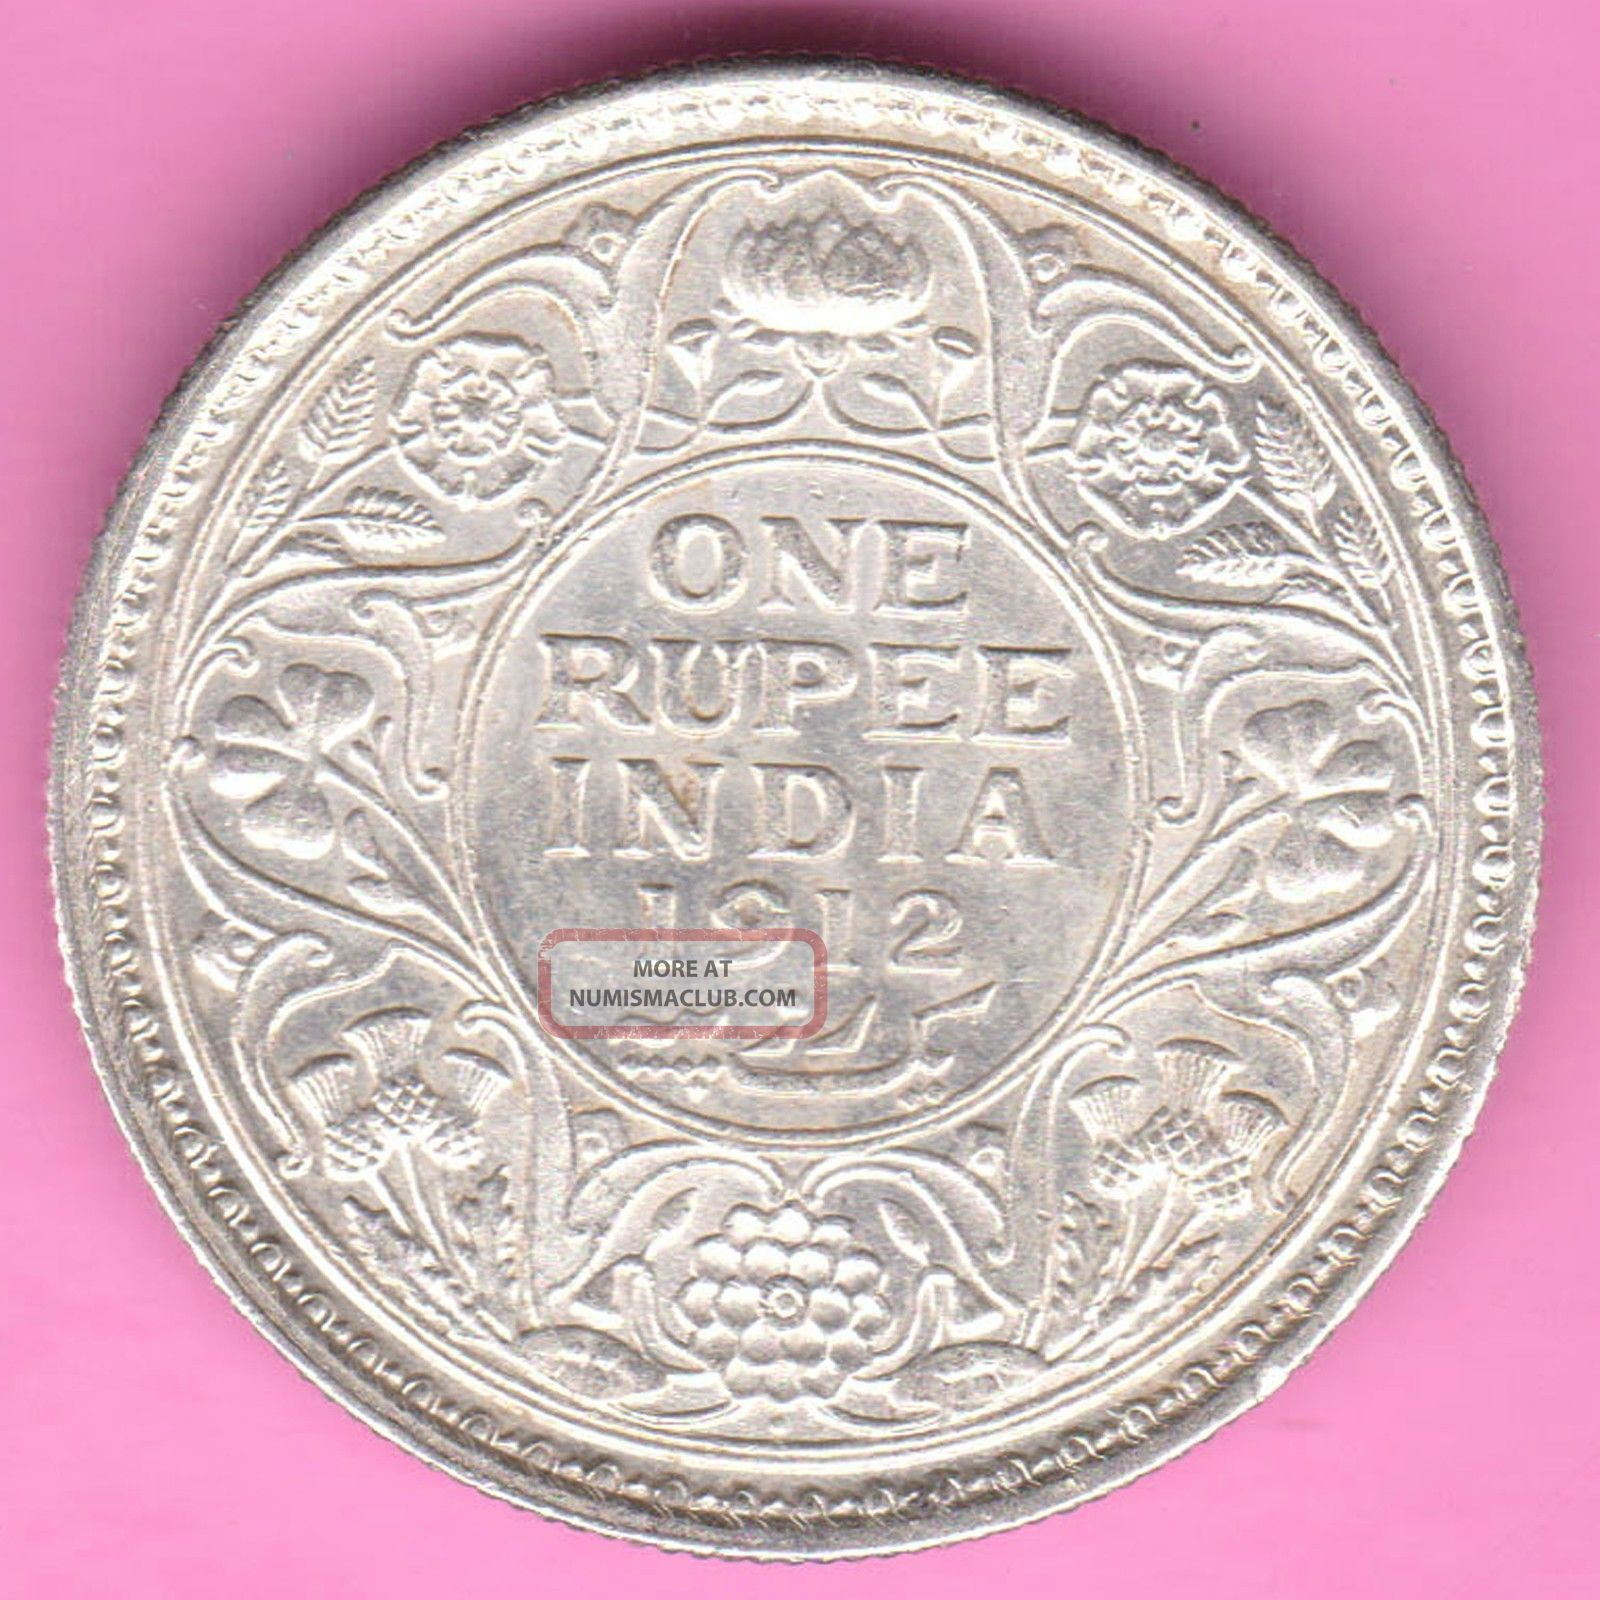 British India - 1912 - King George V - One Rupee - Rarest Silver Coin - 14 India photo